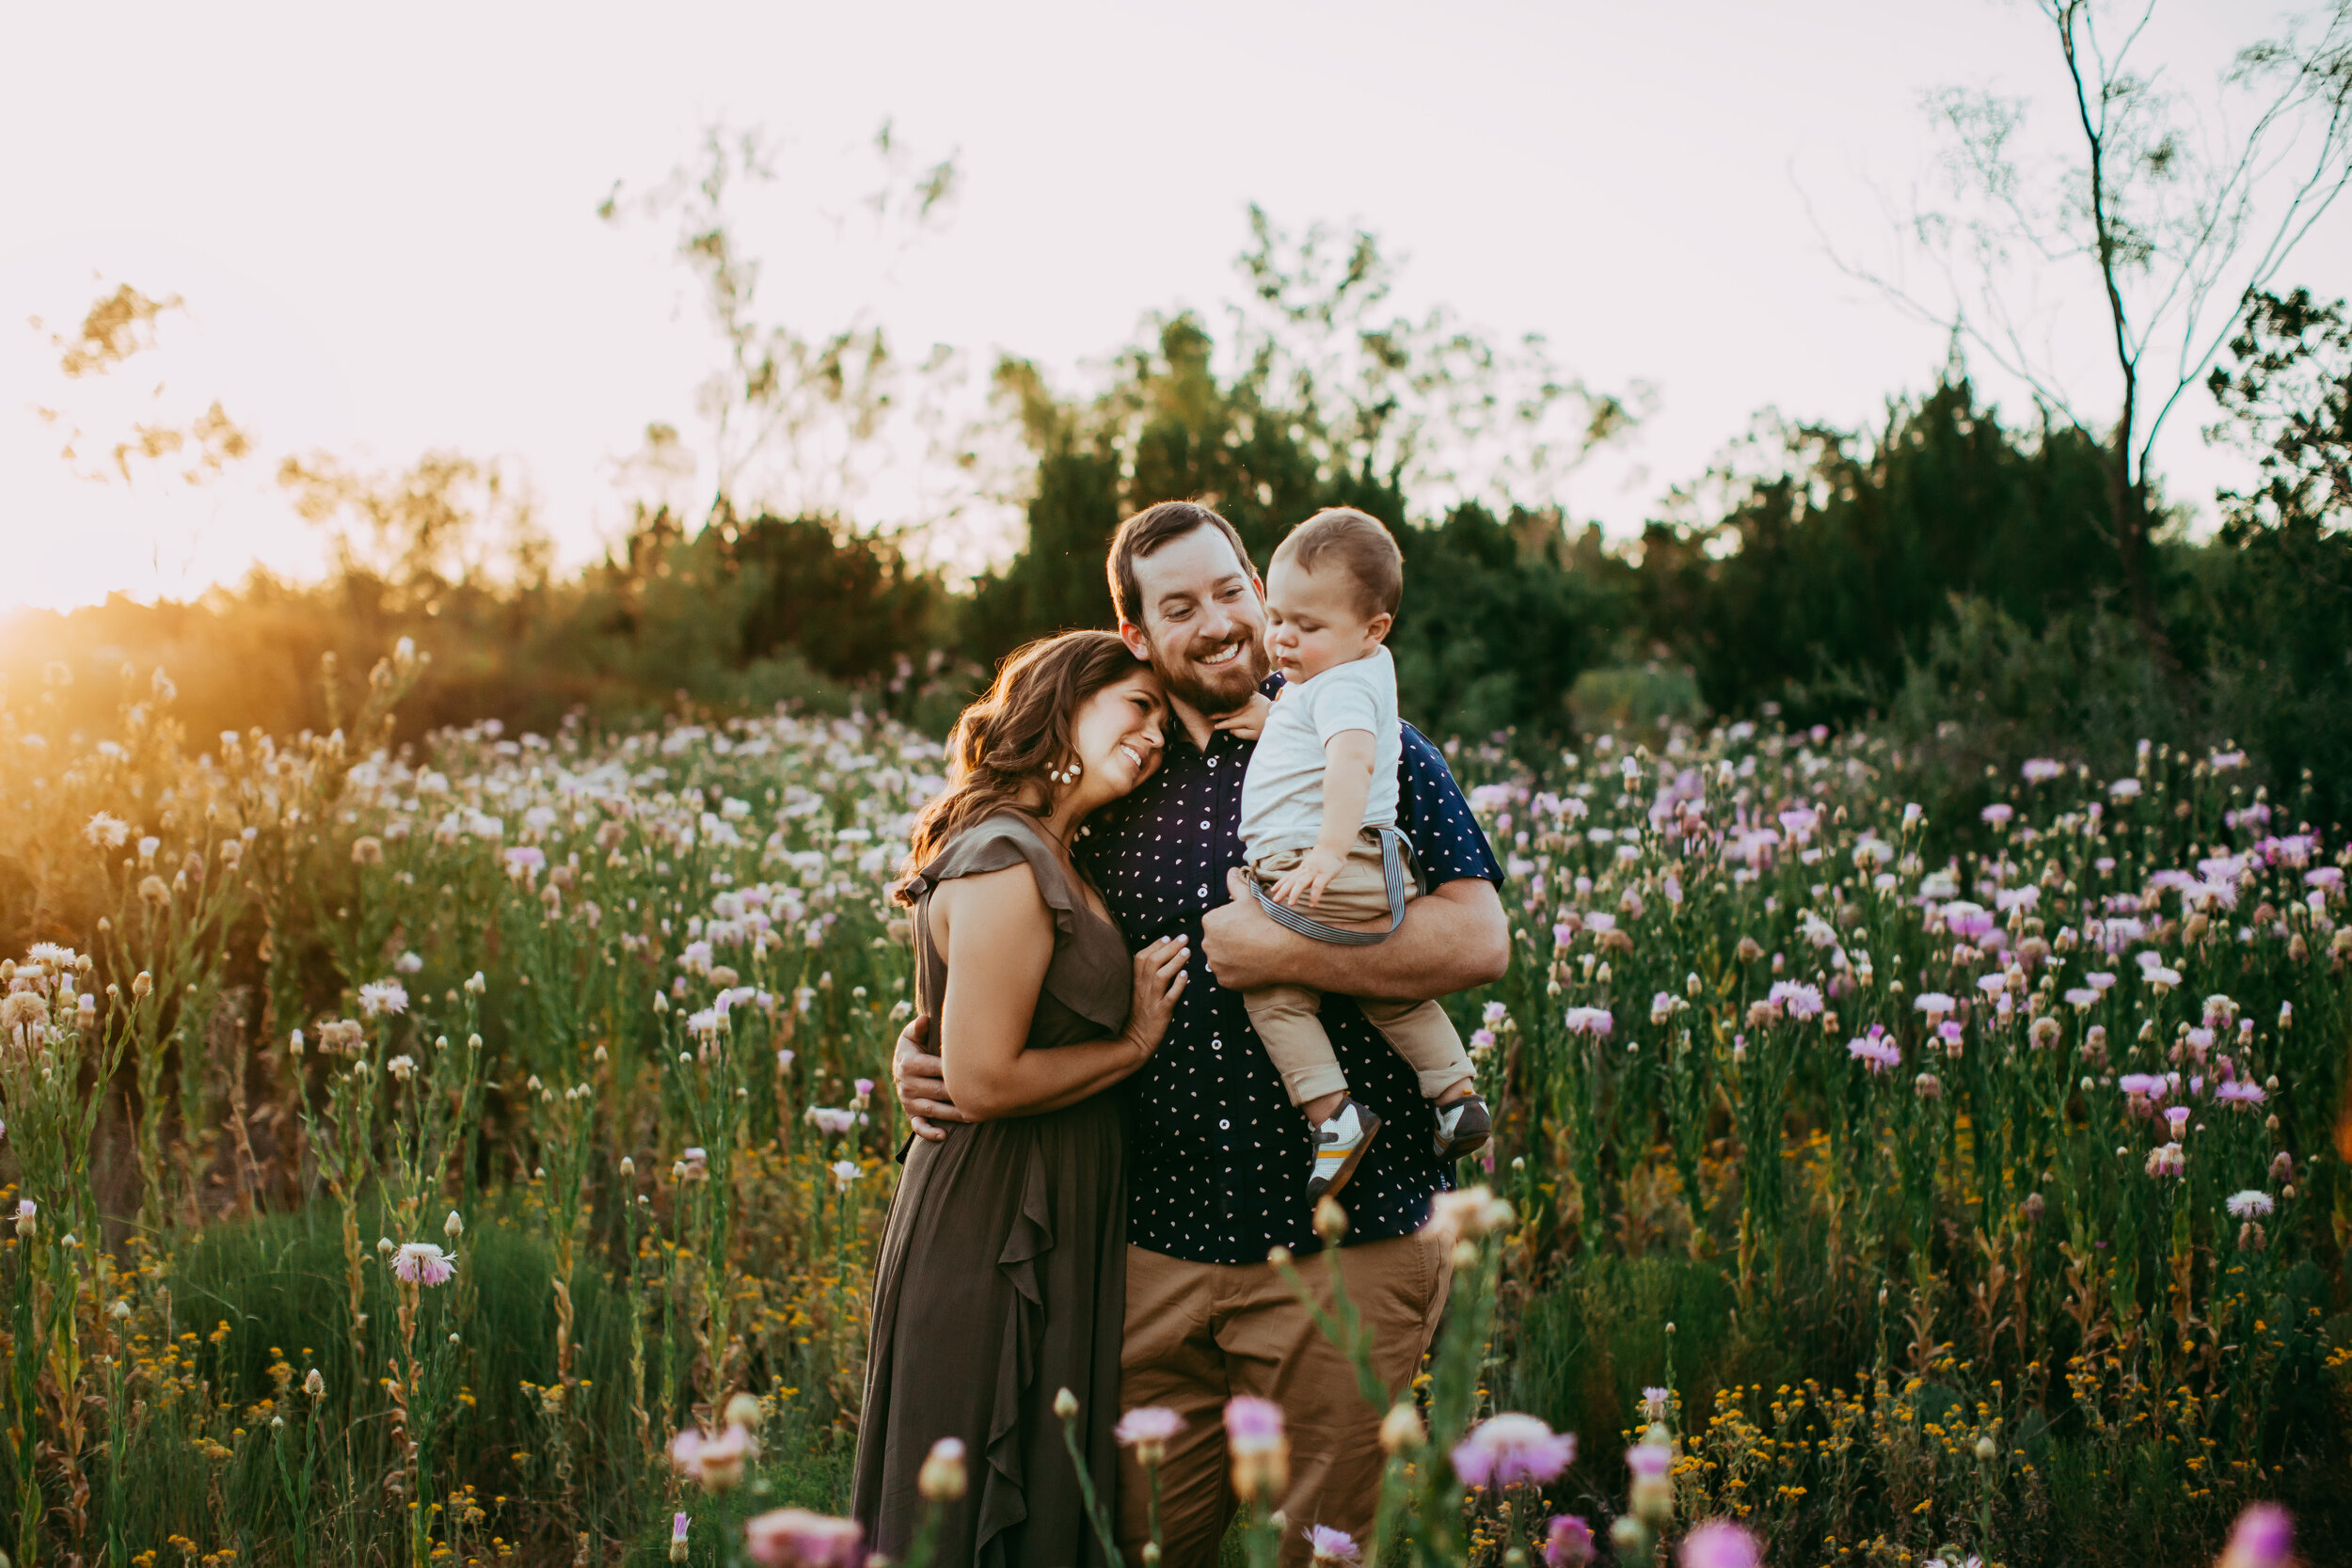 Tender hug between this family of three in the middle of this wildflower field at sunset #tealawardphotography #texasfamilyphotographer #amarillophotographer #amarillofamilyphotographer #lifestylephotography #emotionalphotography #familyphotoshoot #family #lovingsiblings #purejoy #familyphotos #naturalfamilyinteraction